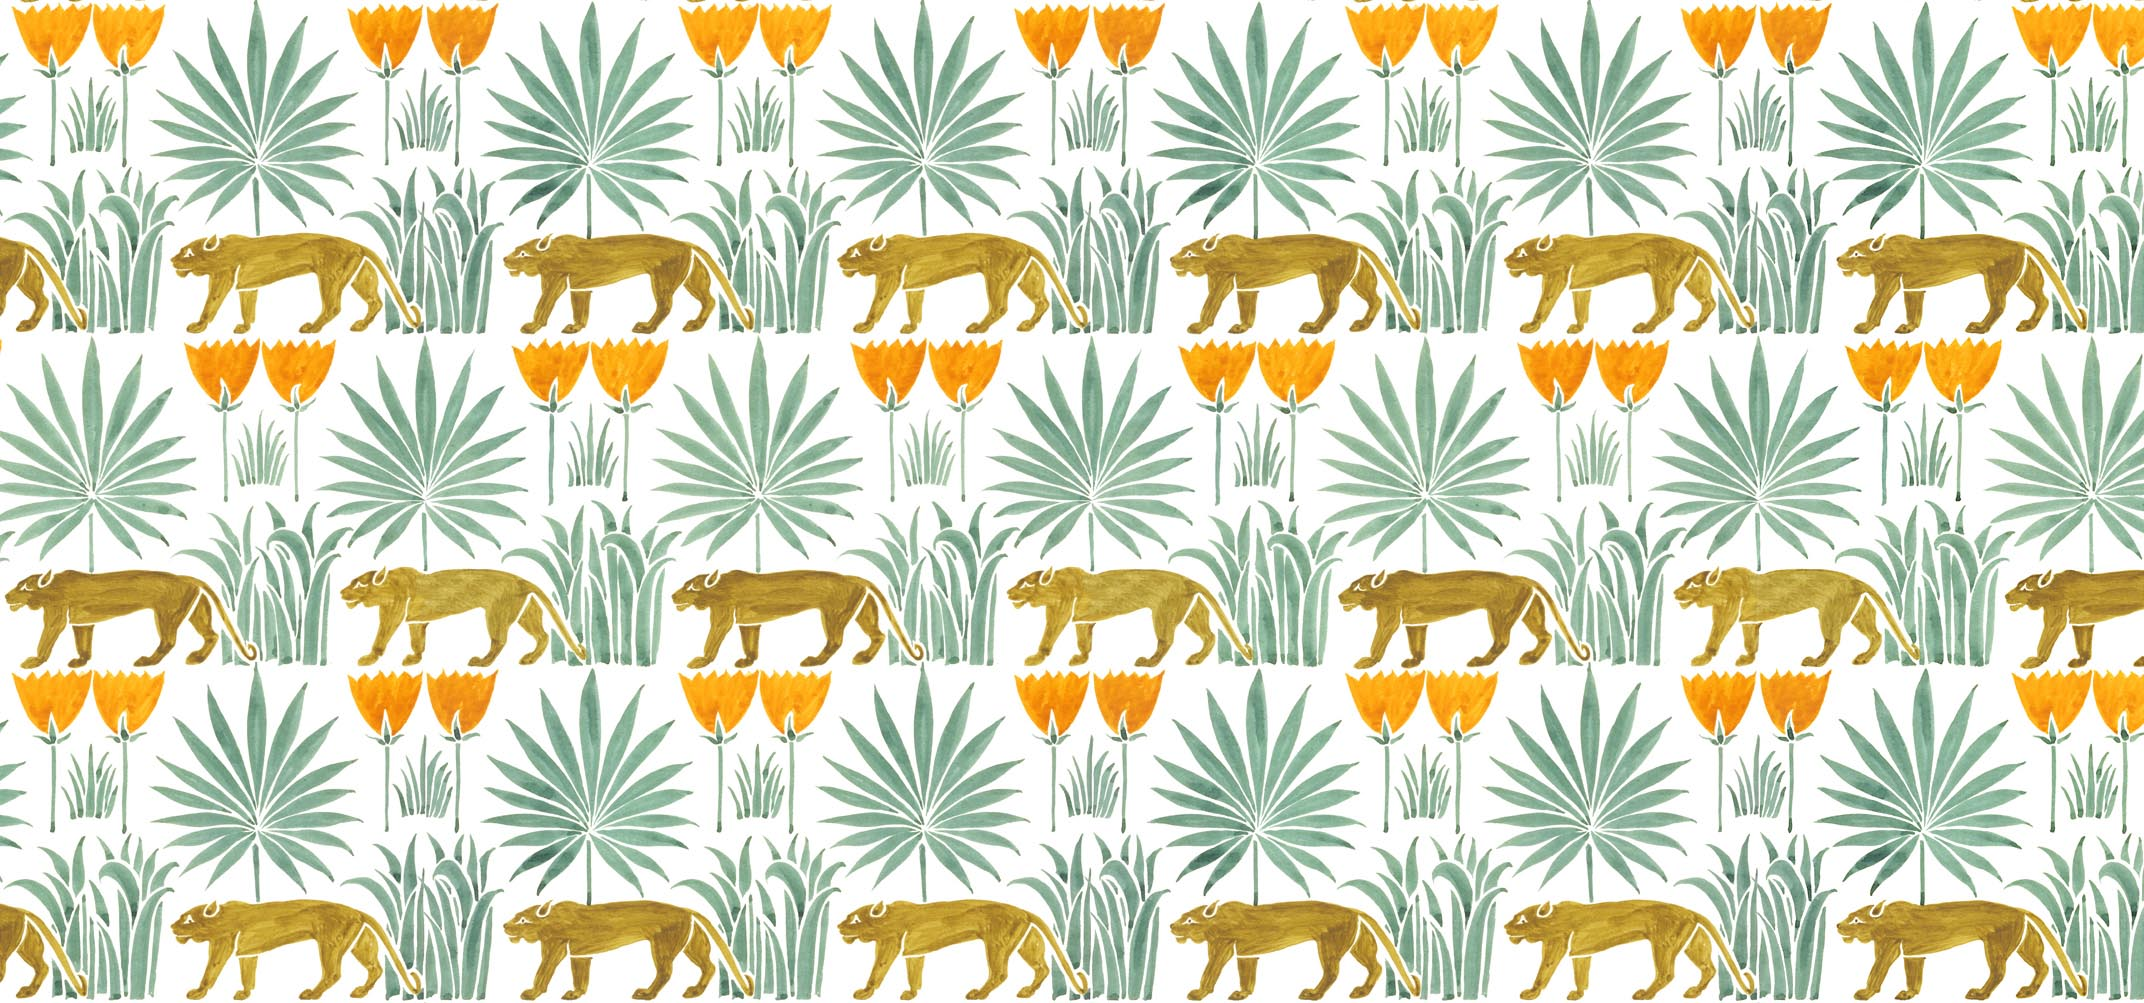 Lioness & Palms by Voysey from the V&A archive